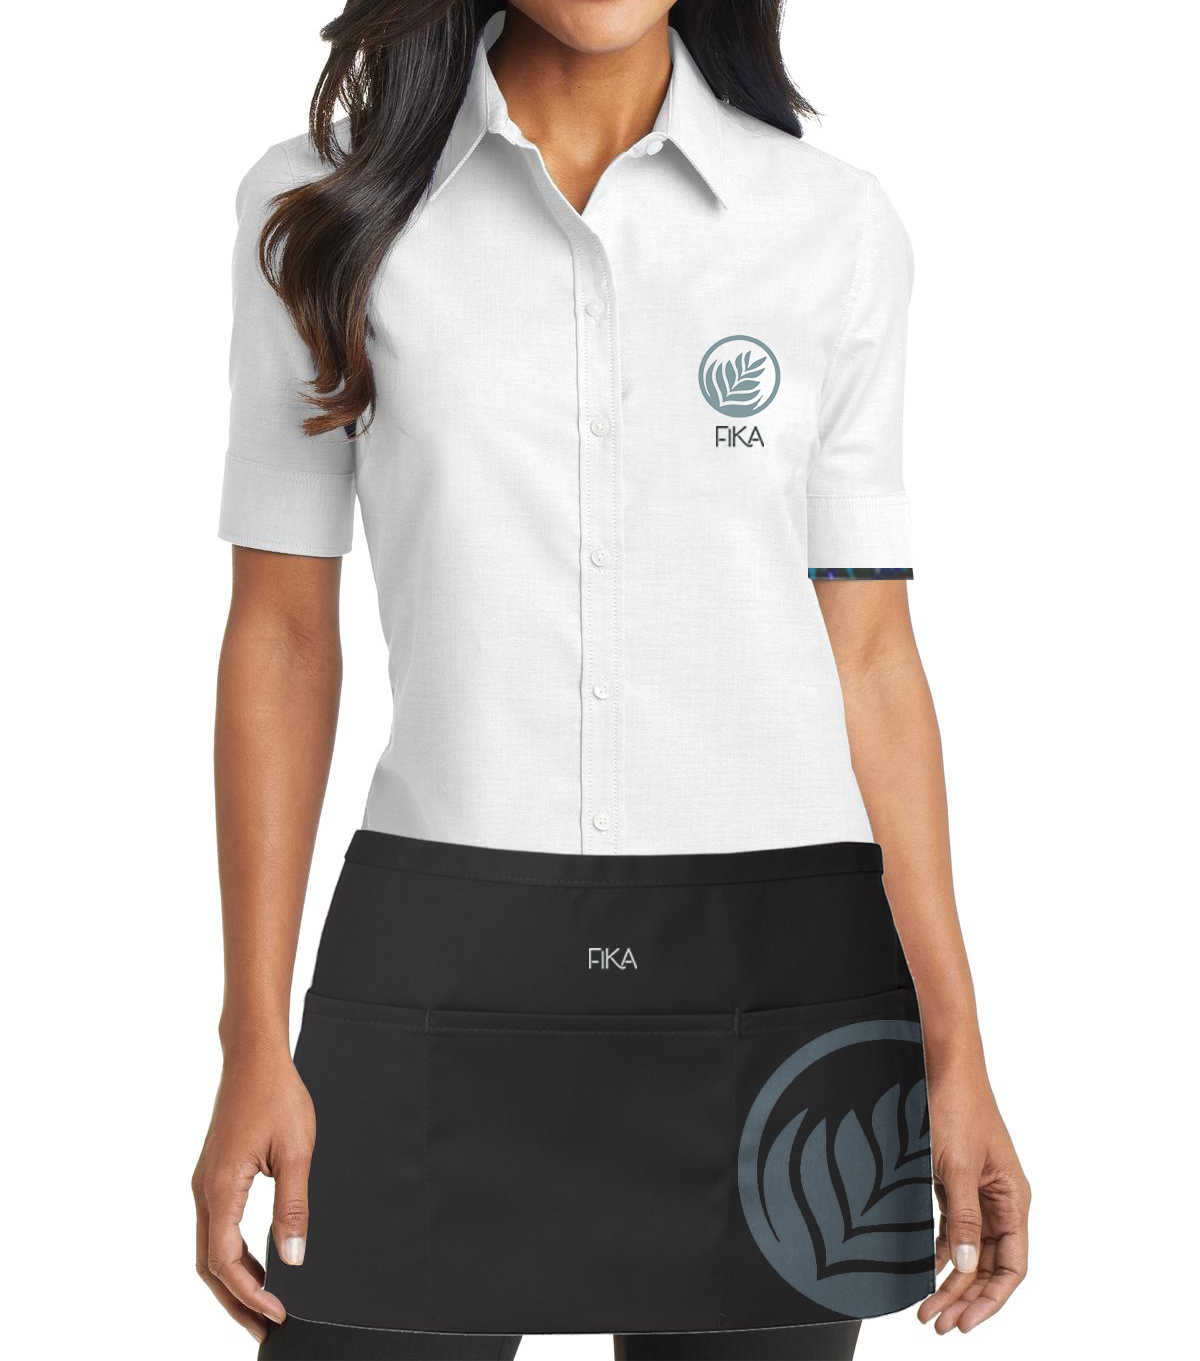 Fika Cafe Uniform Lady Carbnstudio.jpg